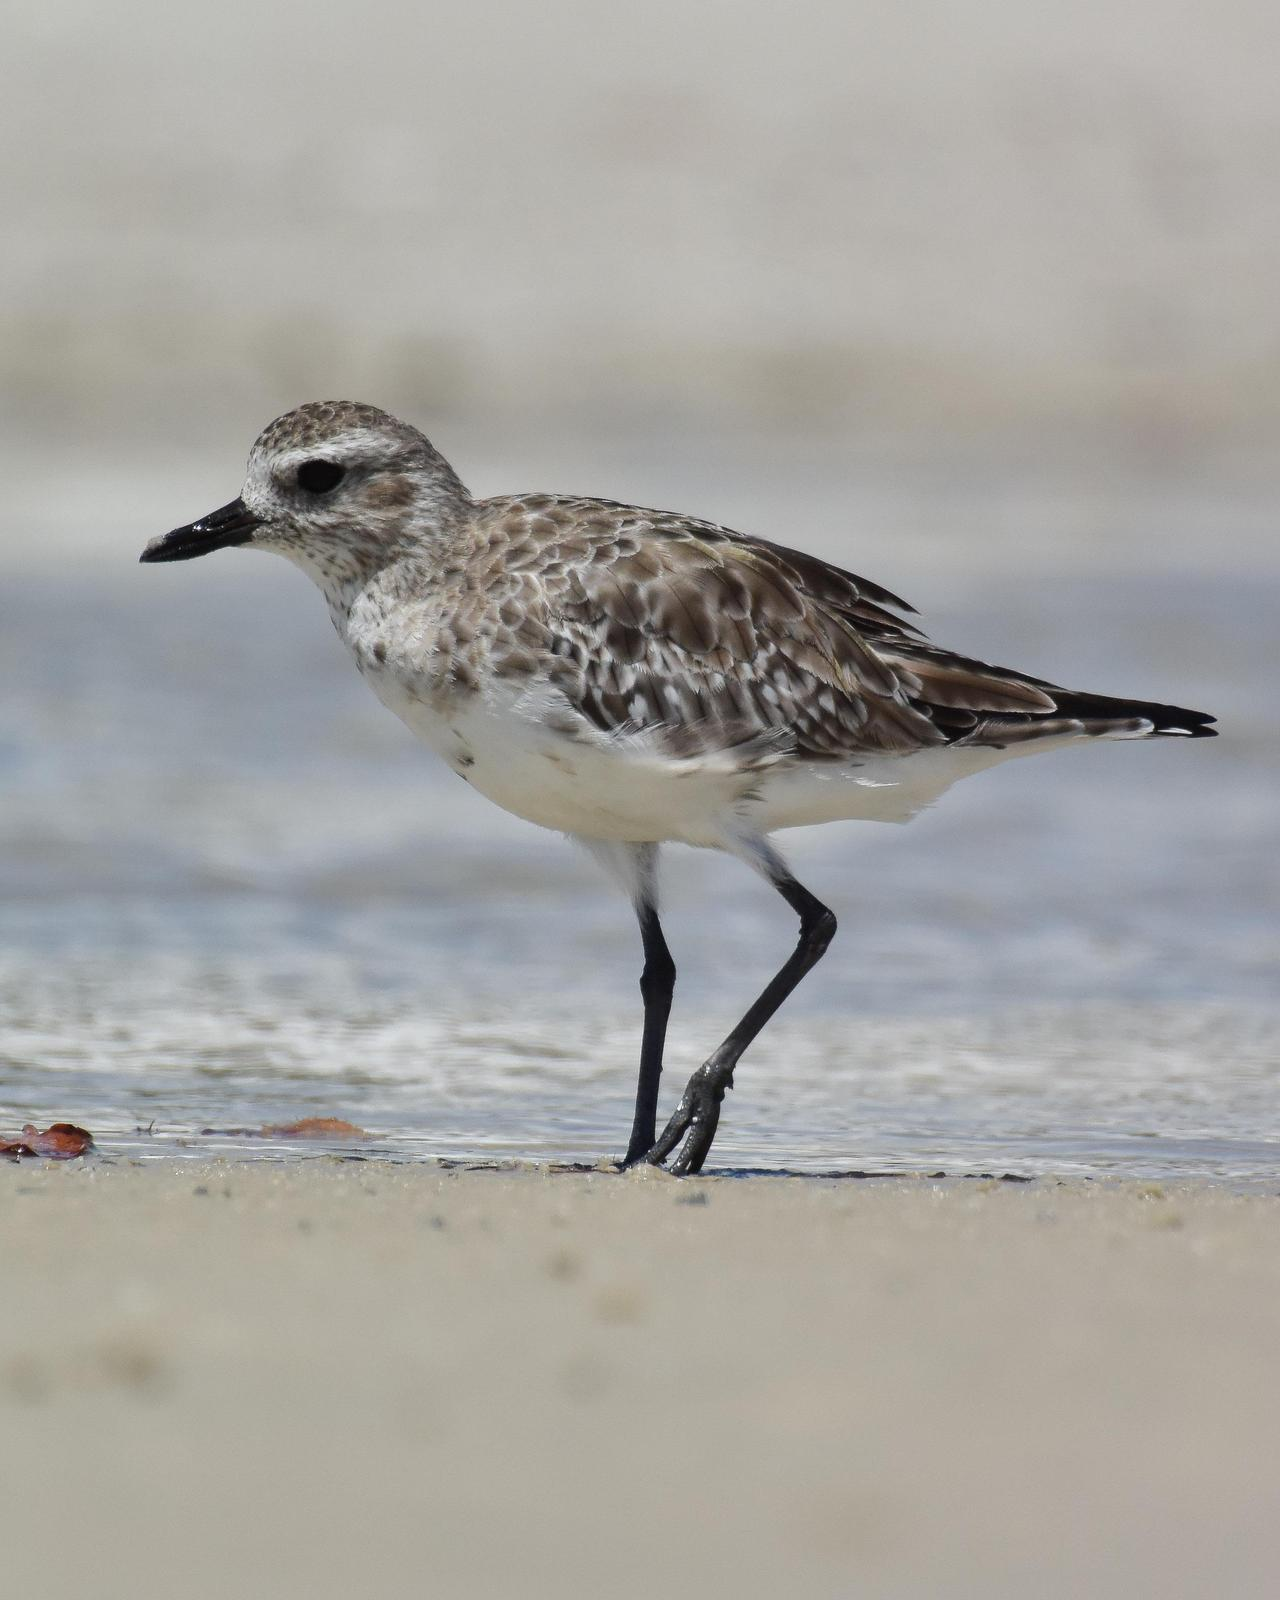 Black-bellied Plover Photo by Emily Percival